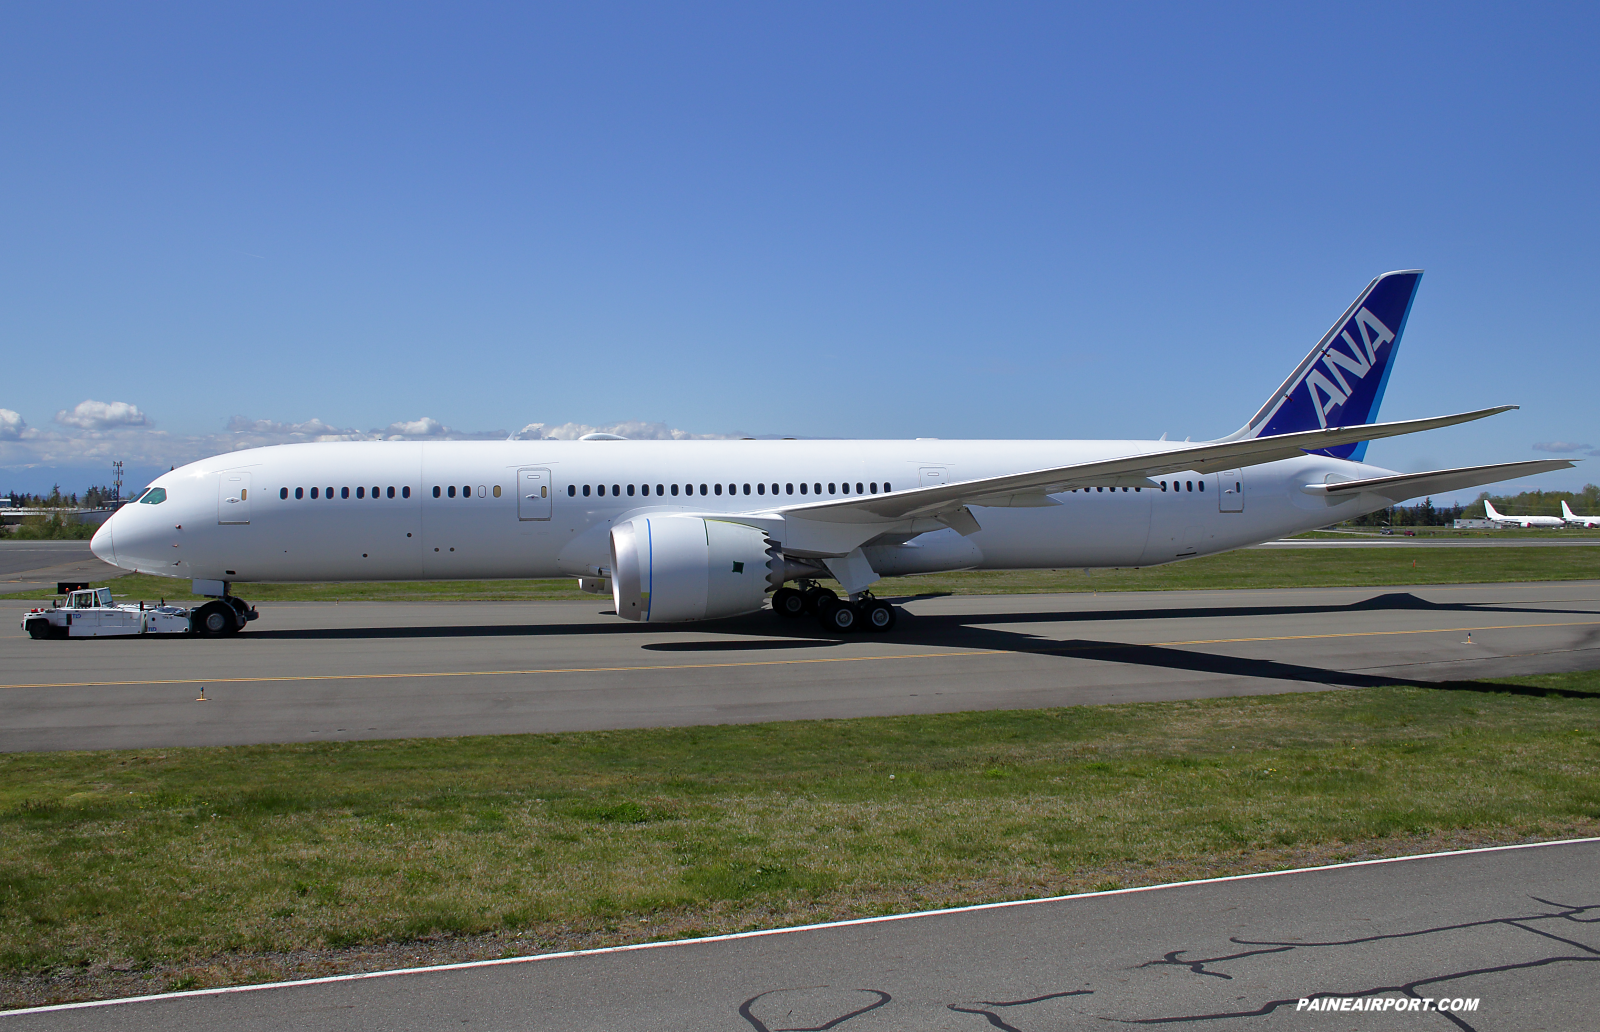 ANA 787-9 line 1003 at Paine Field